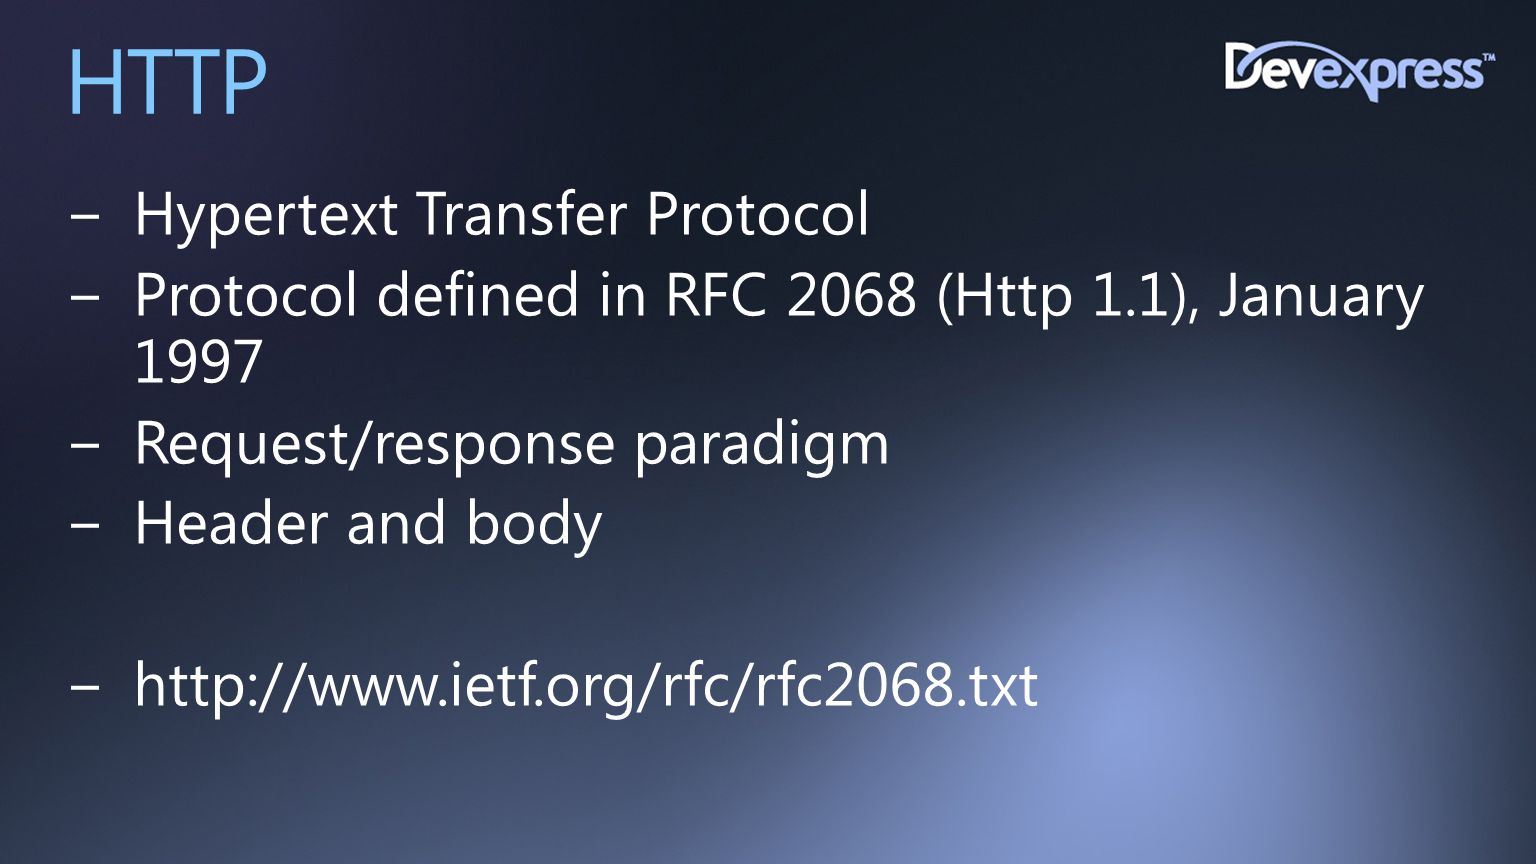 HTTP −Hypertext Transfer Protocol −Protocol defined in RFC 2068 (Http 1.1), January 1997 −Request/response paradigm −Header and body −http://www.ietf.